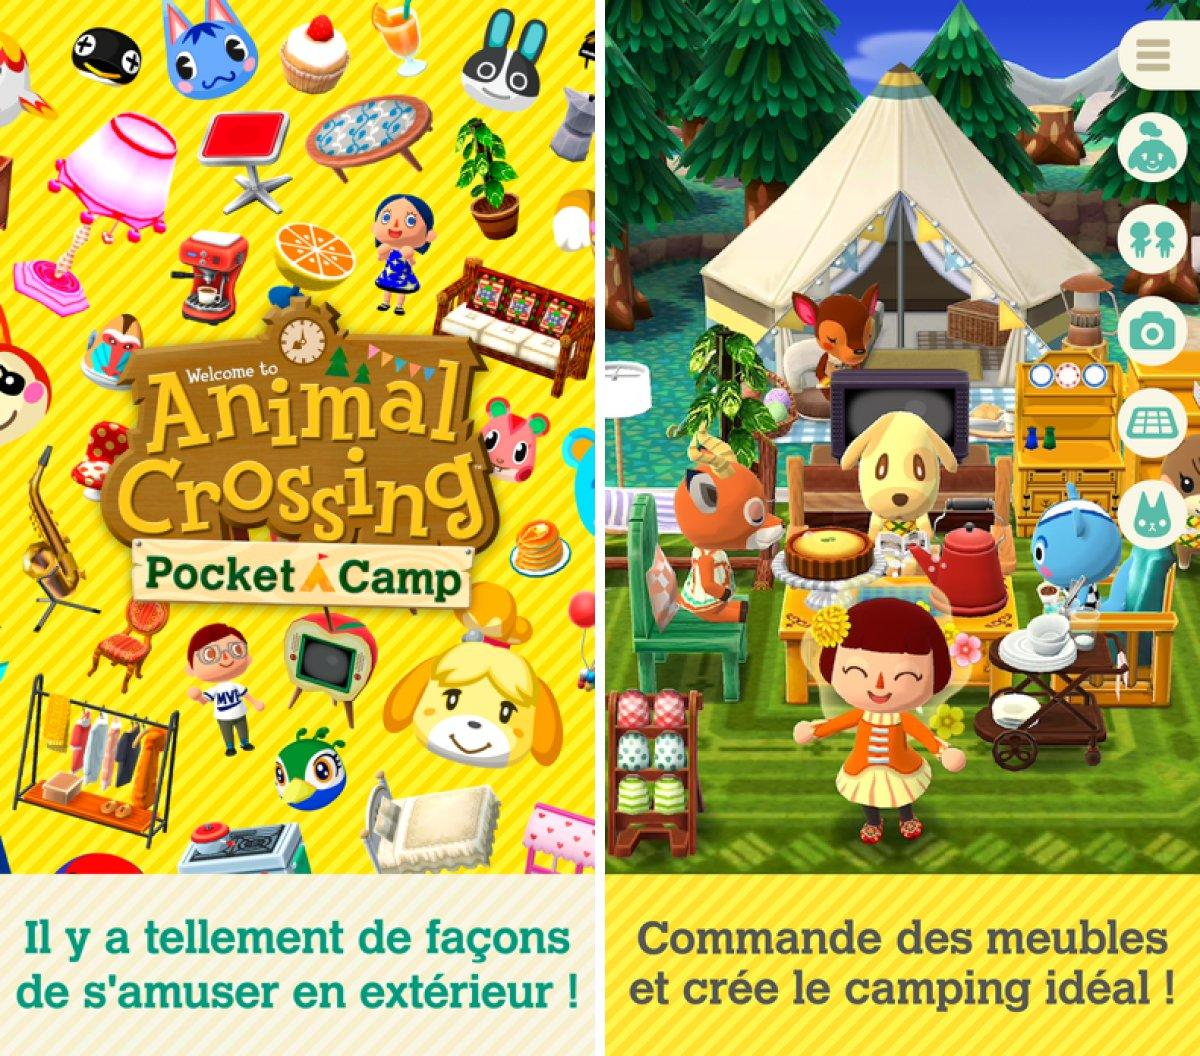 animal-crossing-pocket-camp ipa ipad iphone